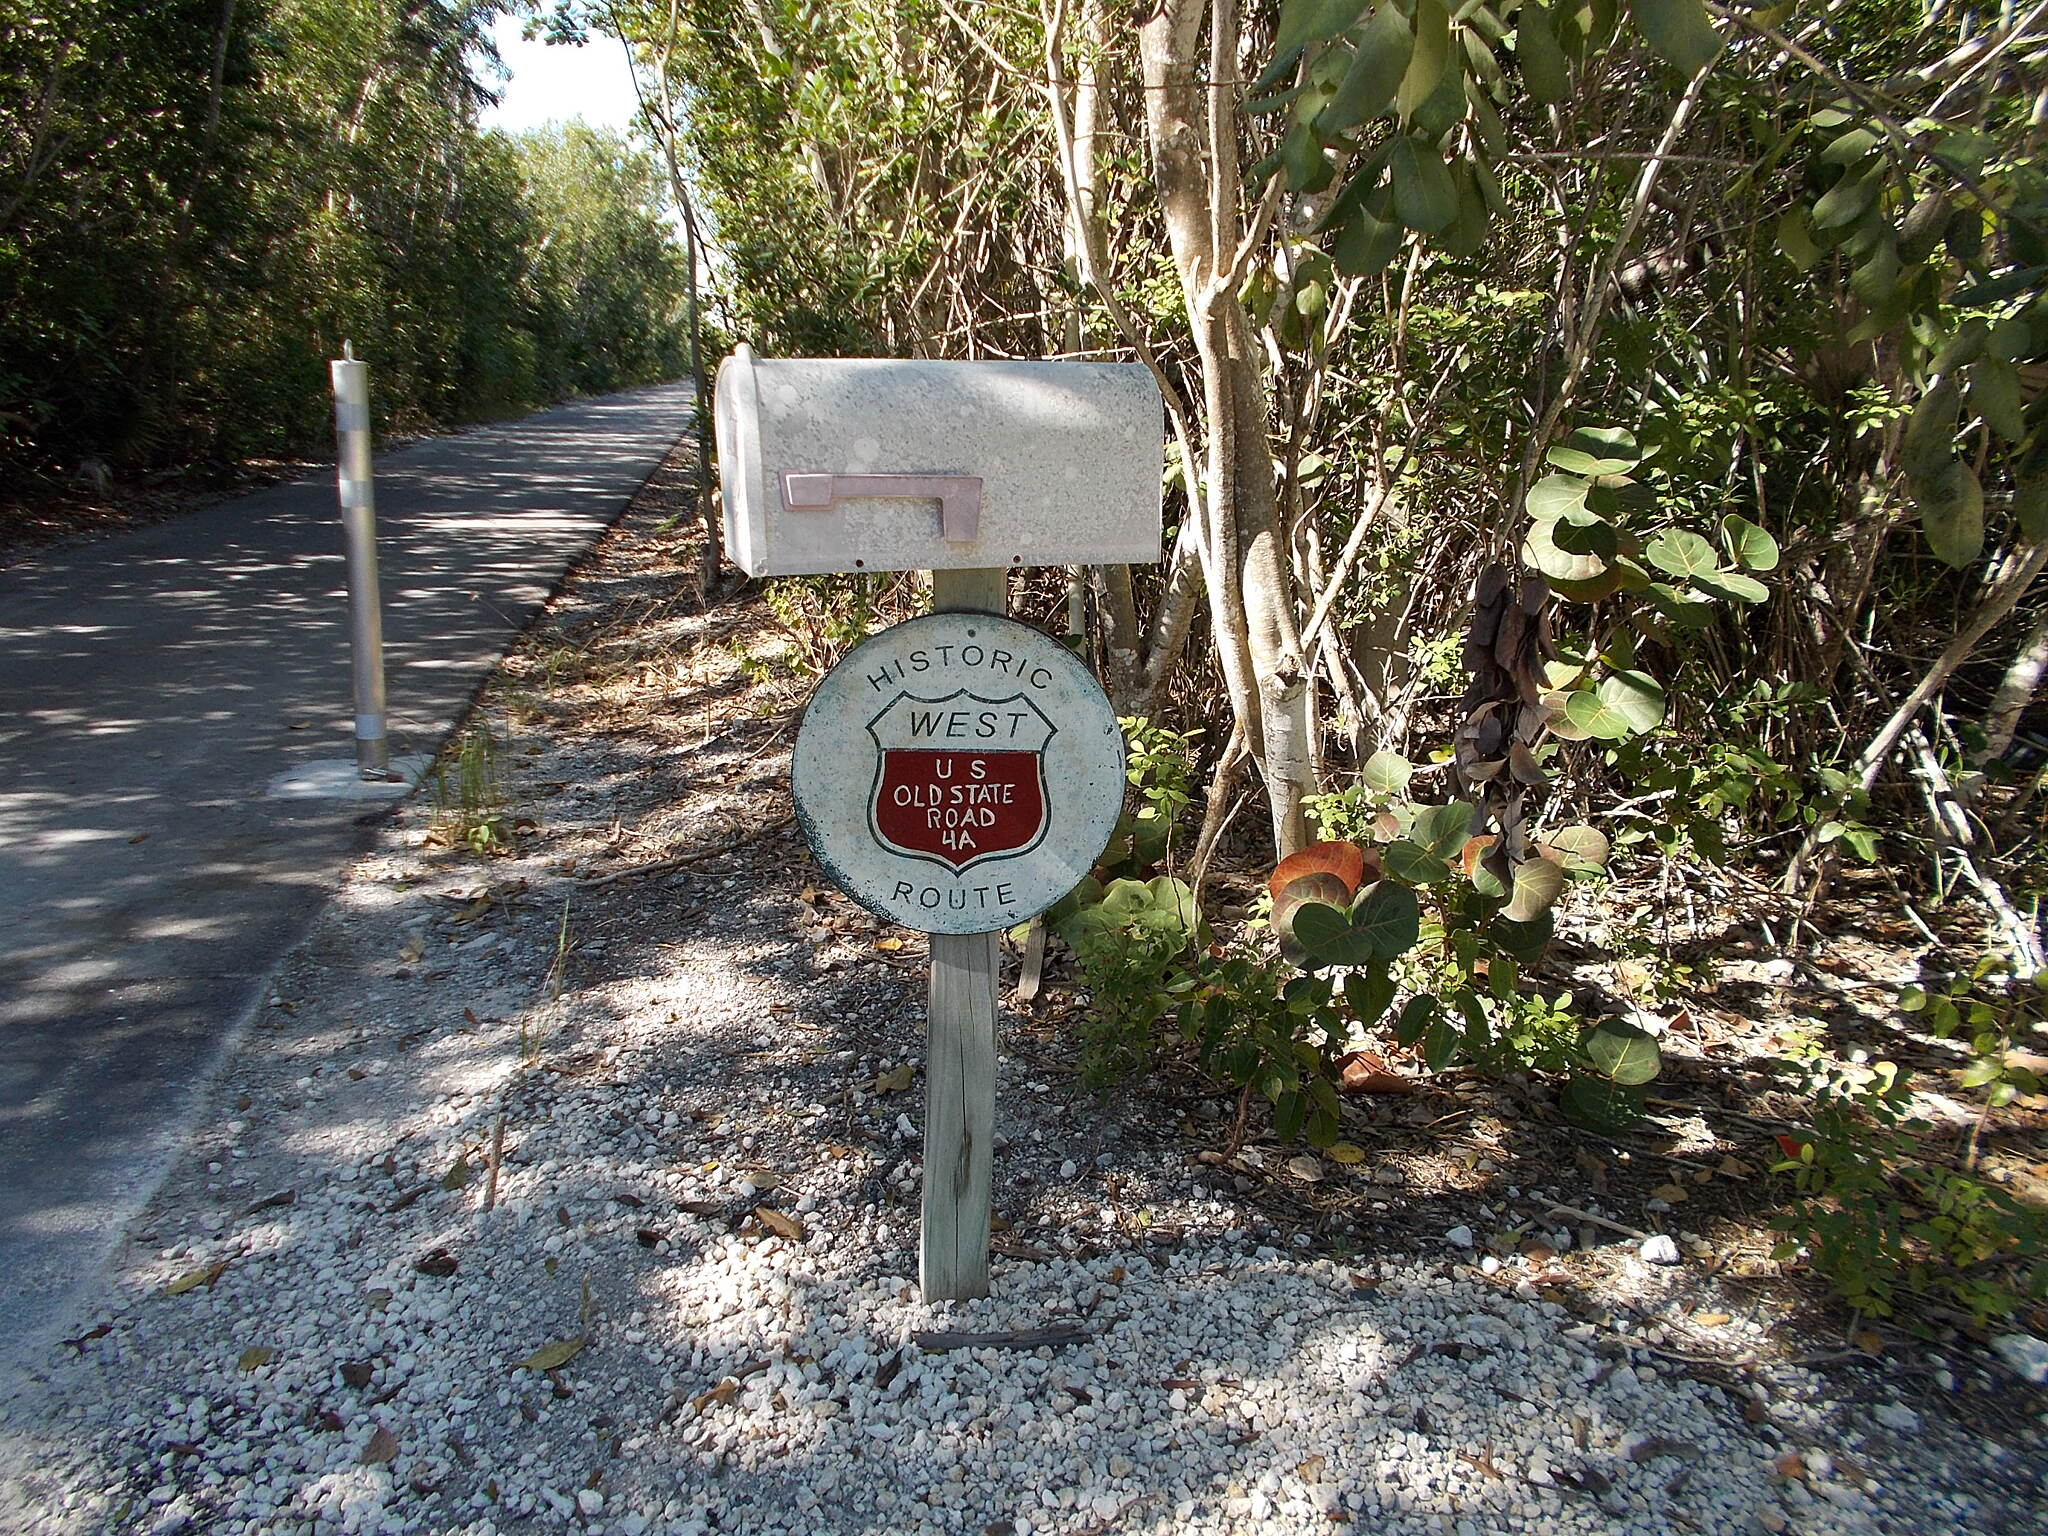 Florida Keys Overseas Heritage Trail FKOHT on Cudjoe Key The trail on Cudjoe Key is placed on top of historic Route 4A. Photo by Bob Youker.